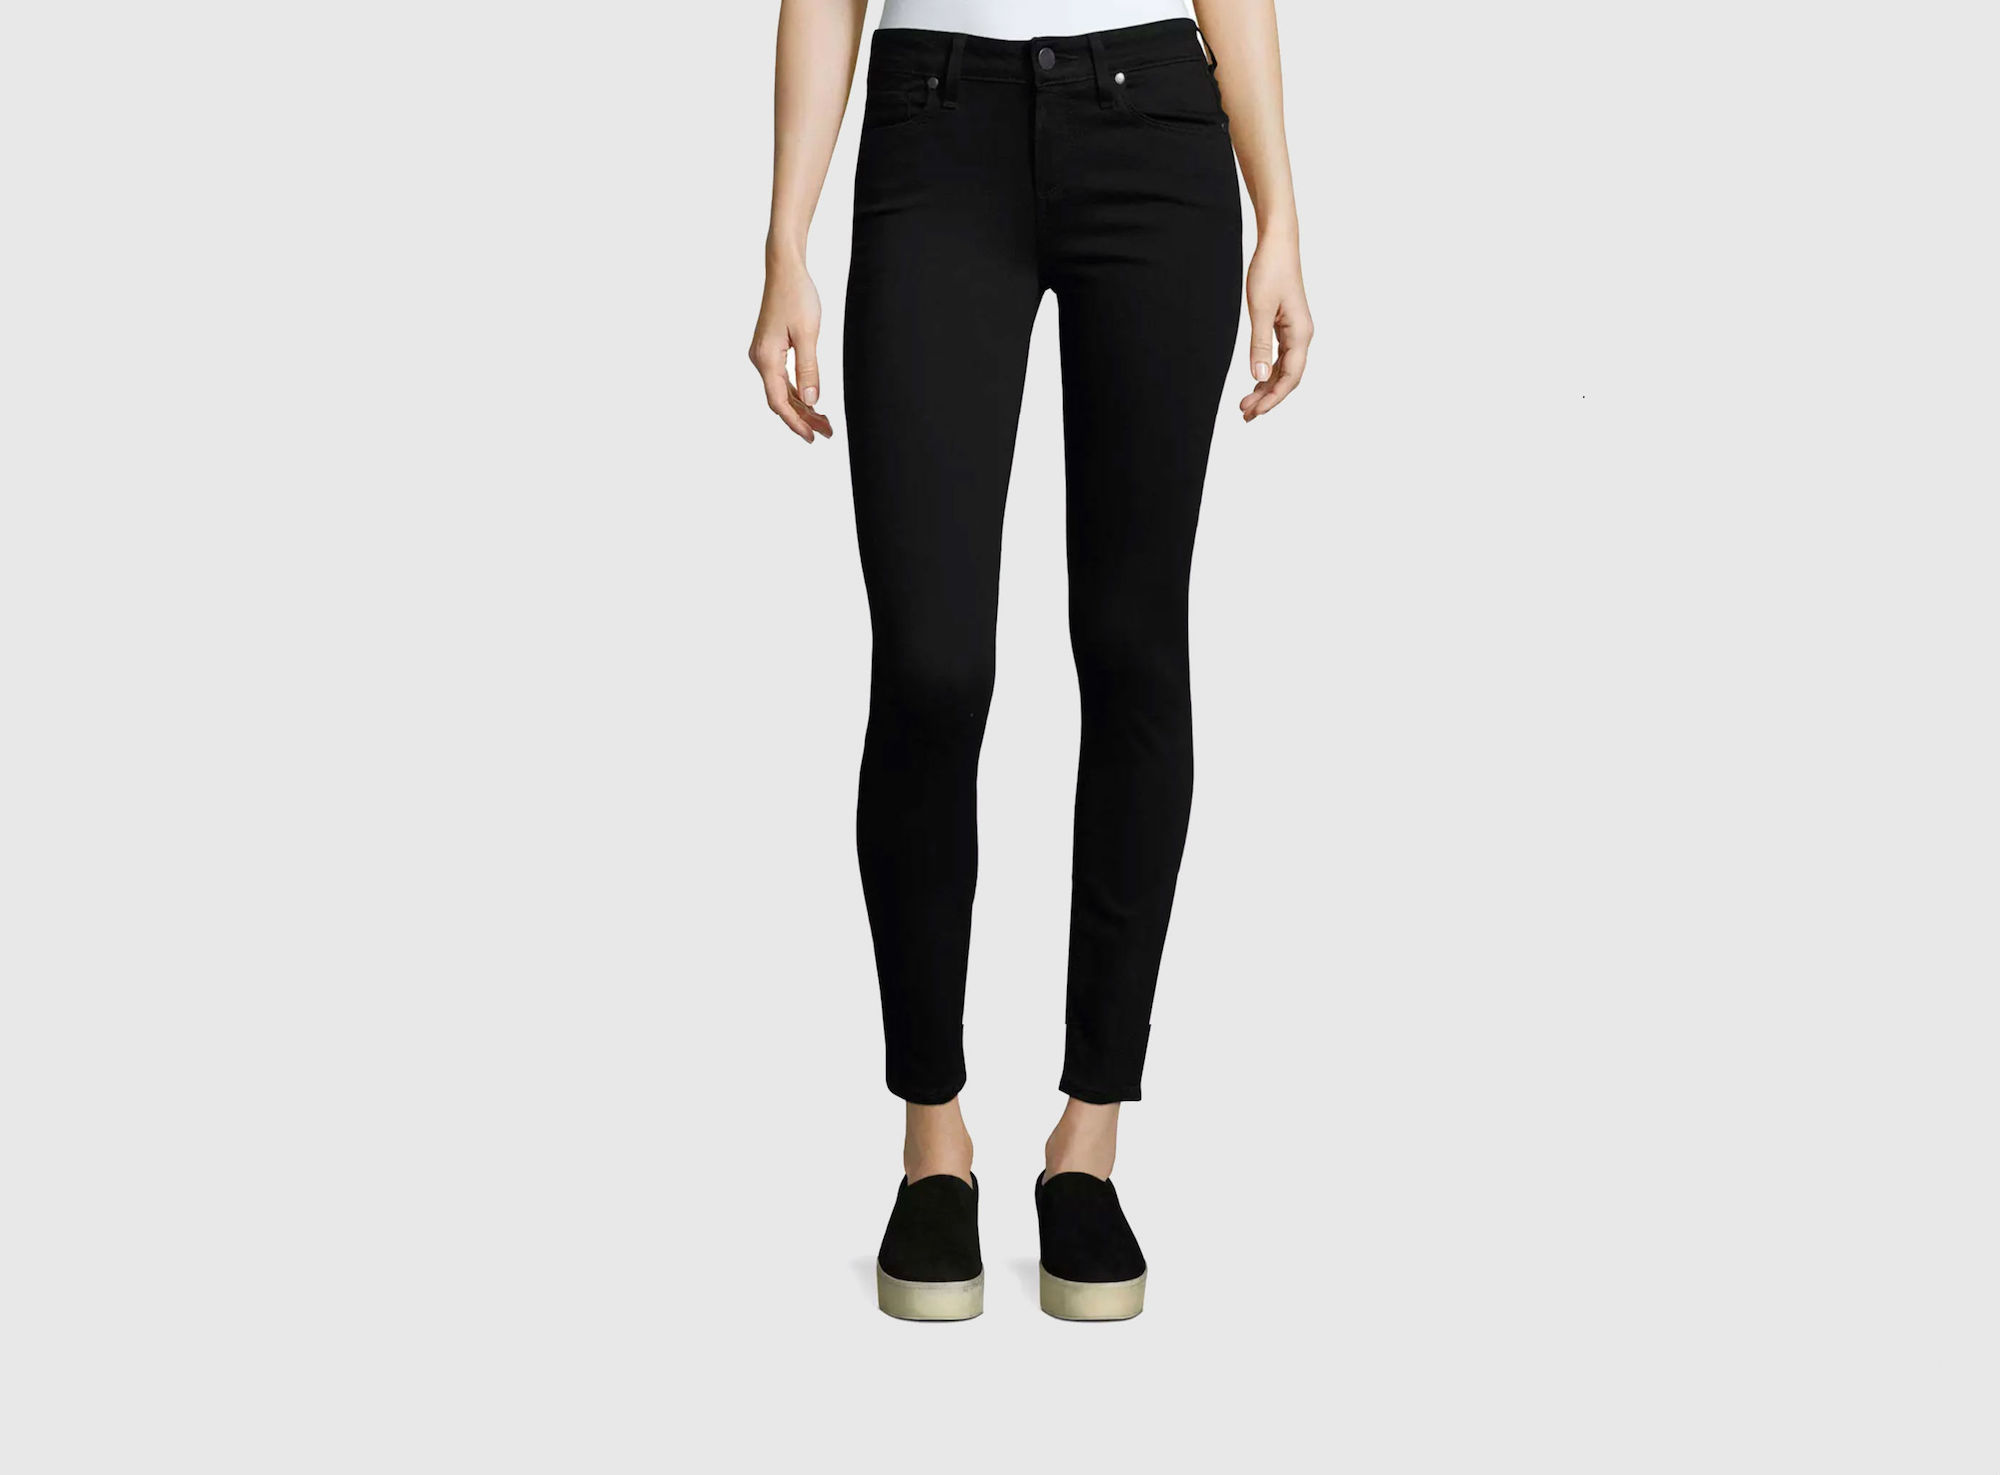 Stretchy Skinny Jeans That Actually Keep Their Shape